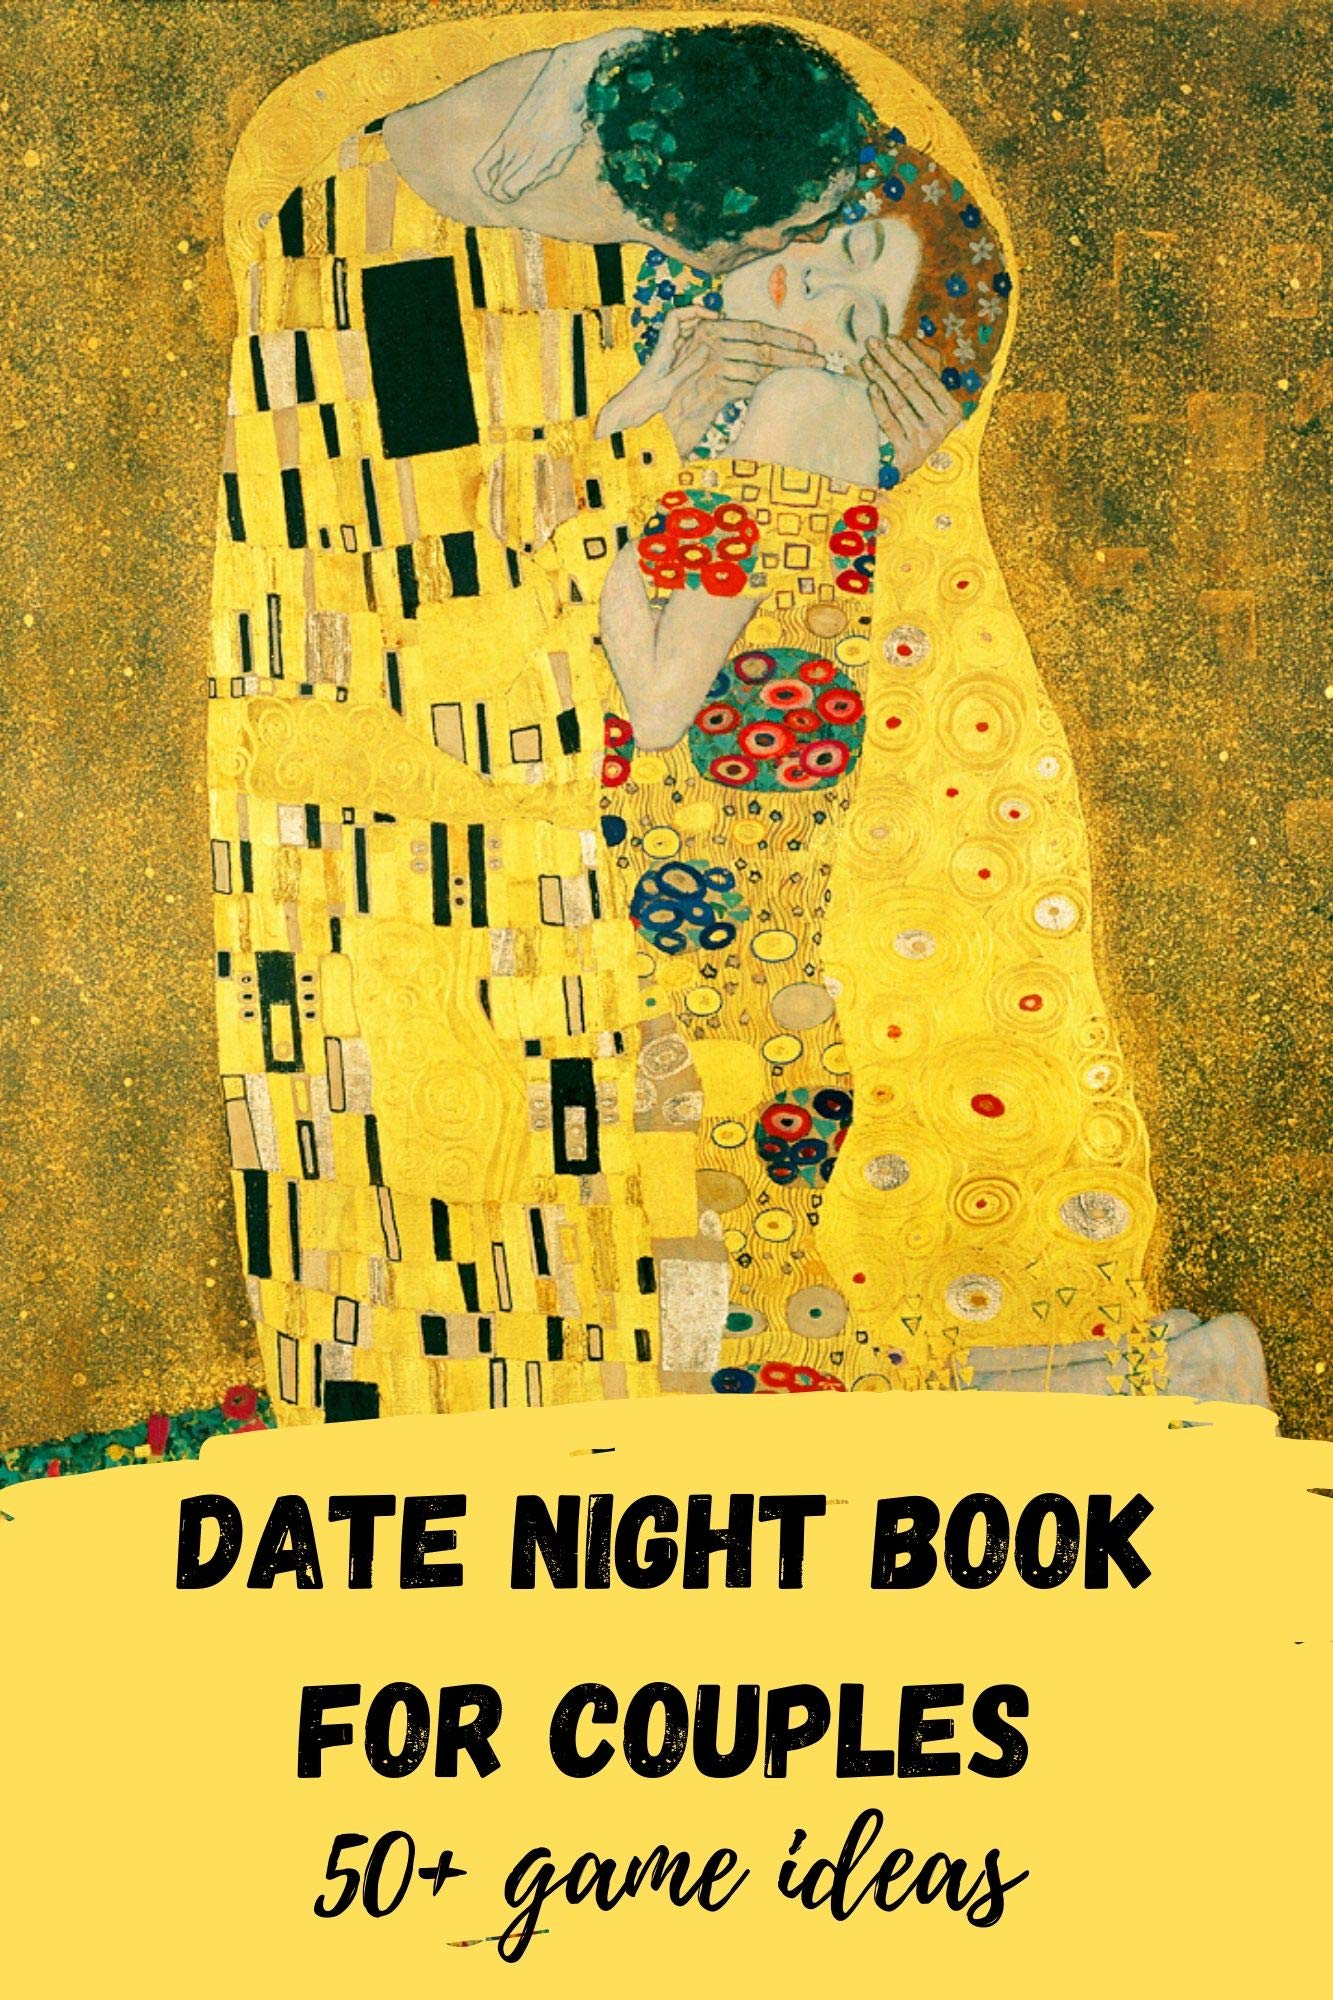 Date night flirting book for couples 50 + games at home - Gustav Klimt the Kiss Cover: Activity book for girlfrind or boyfriend